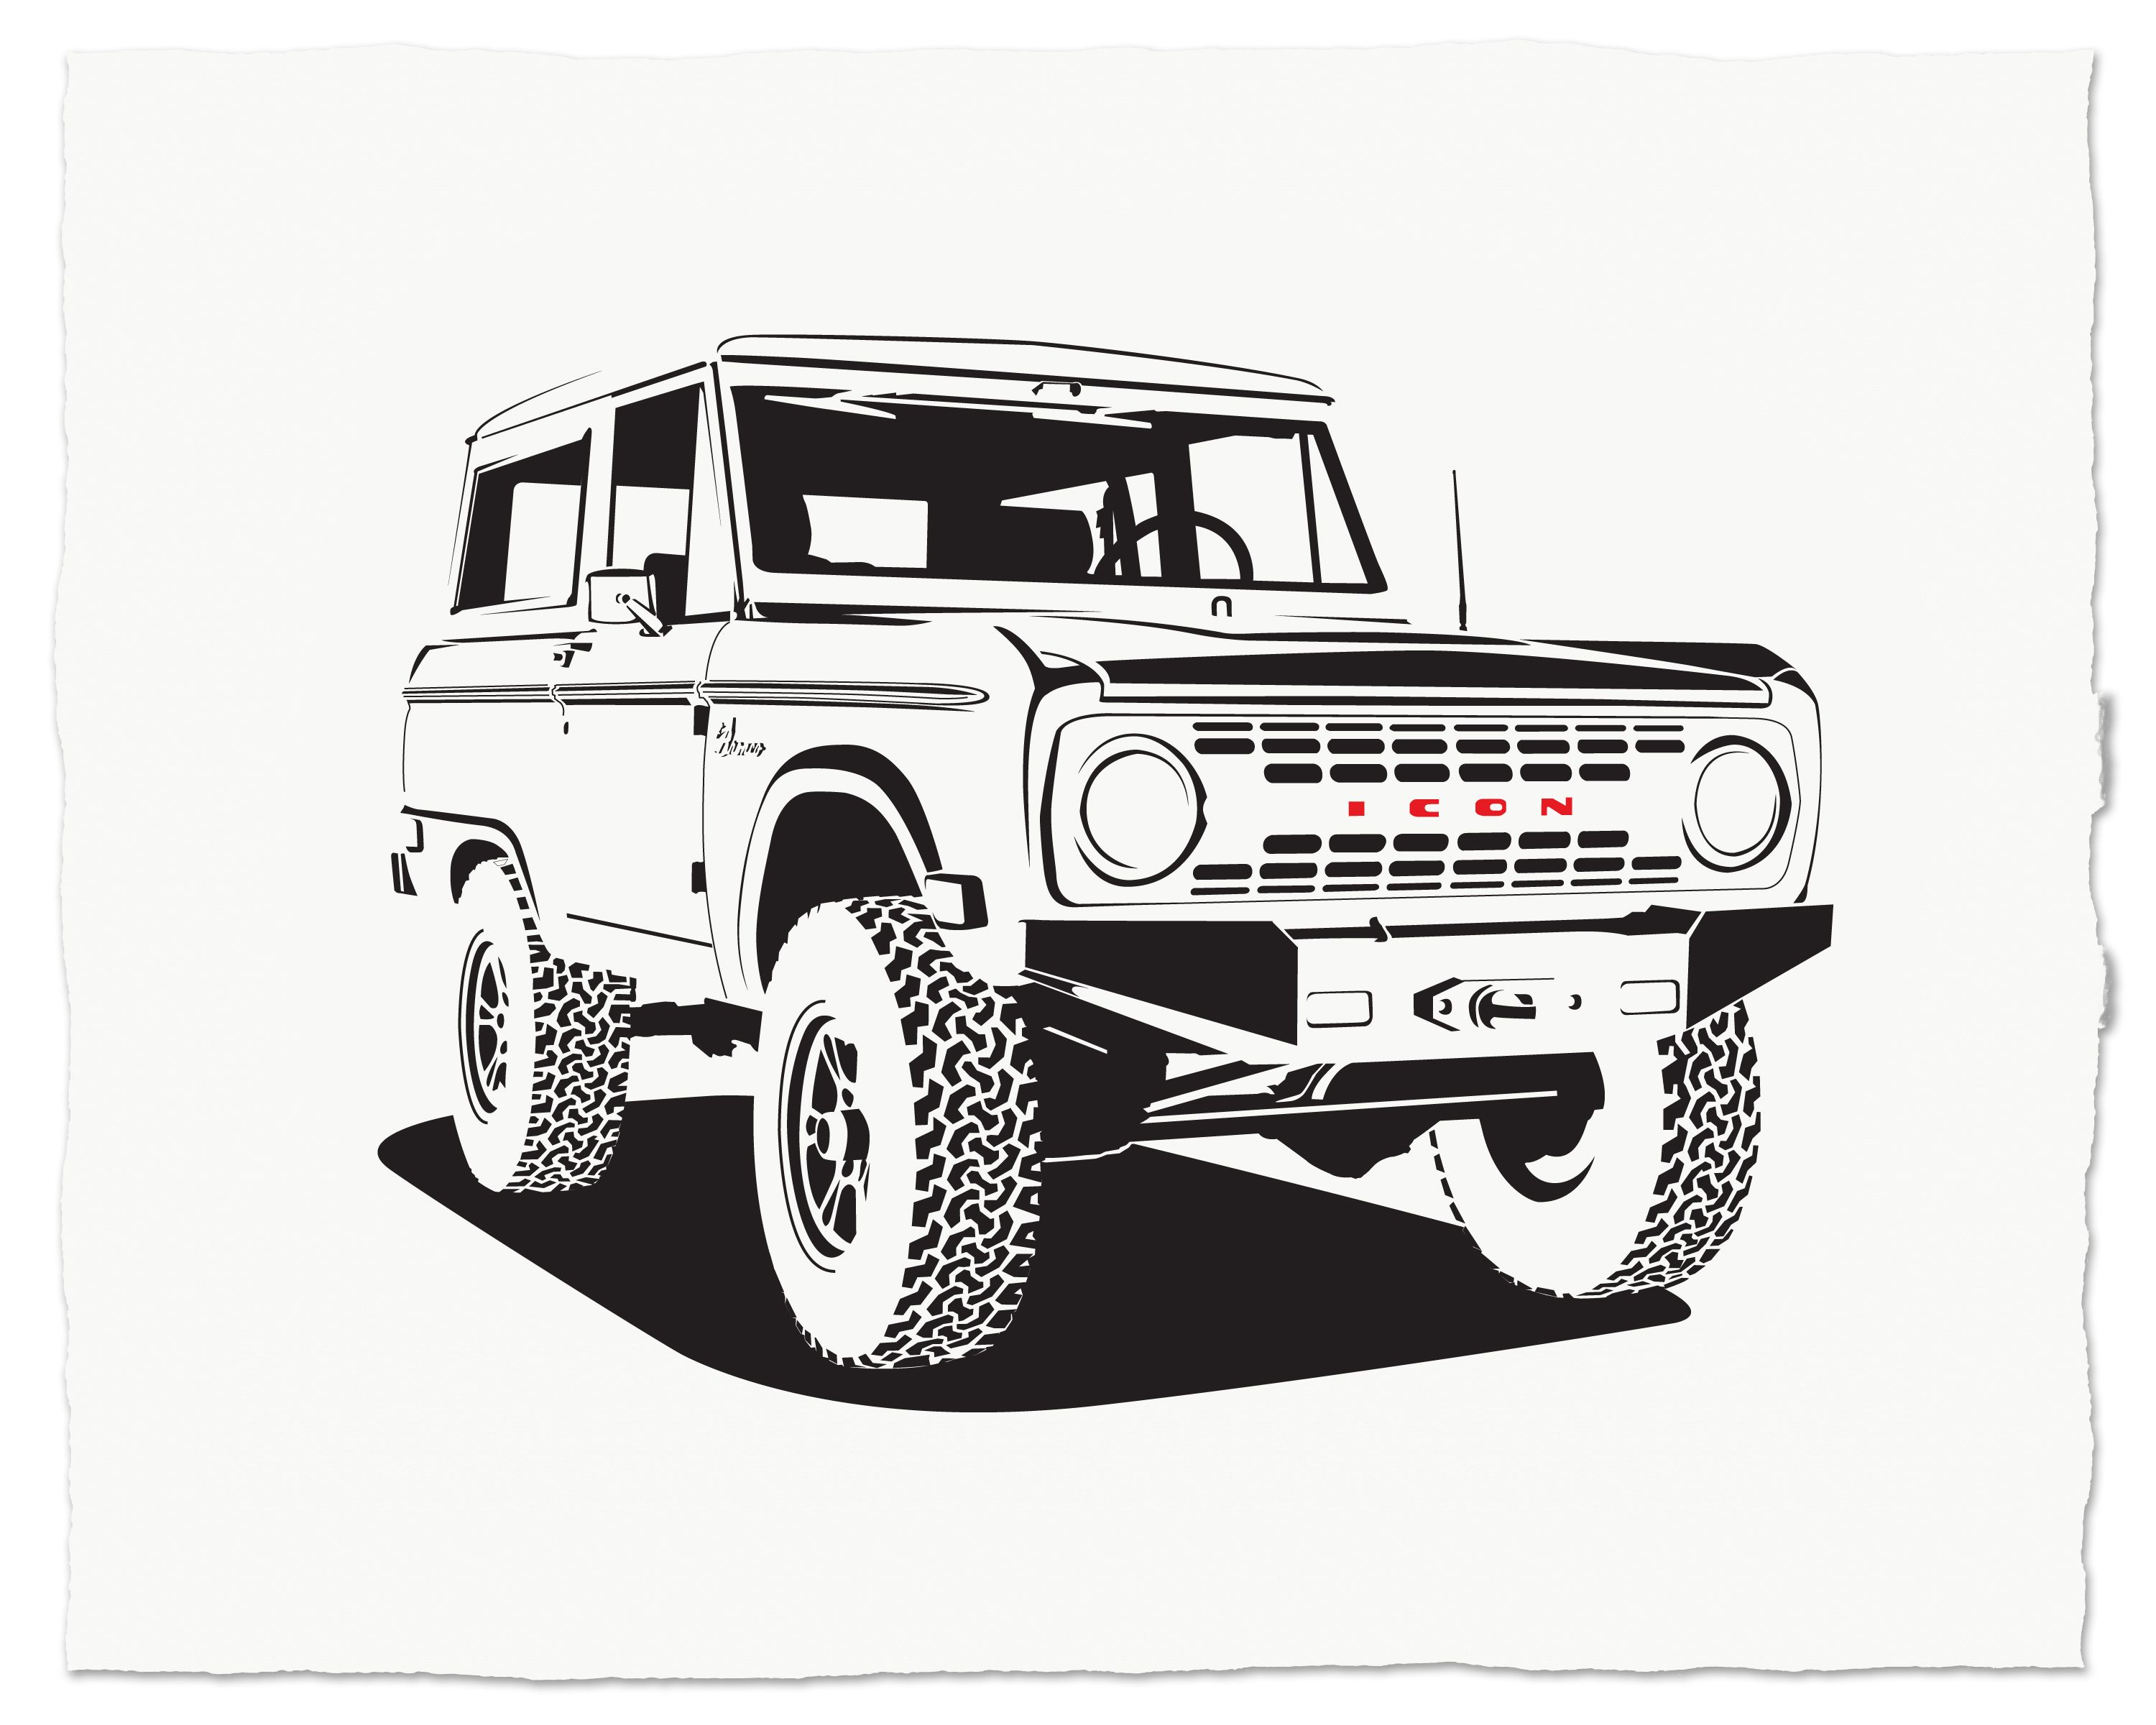 1956 chevy tattoo submited images pic2fly - Hand Painted Stencil Art Shop